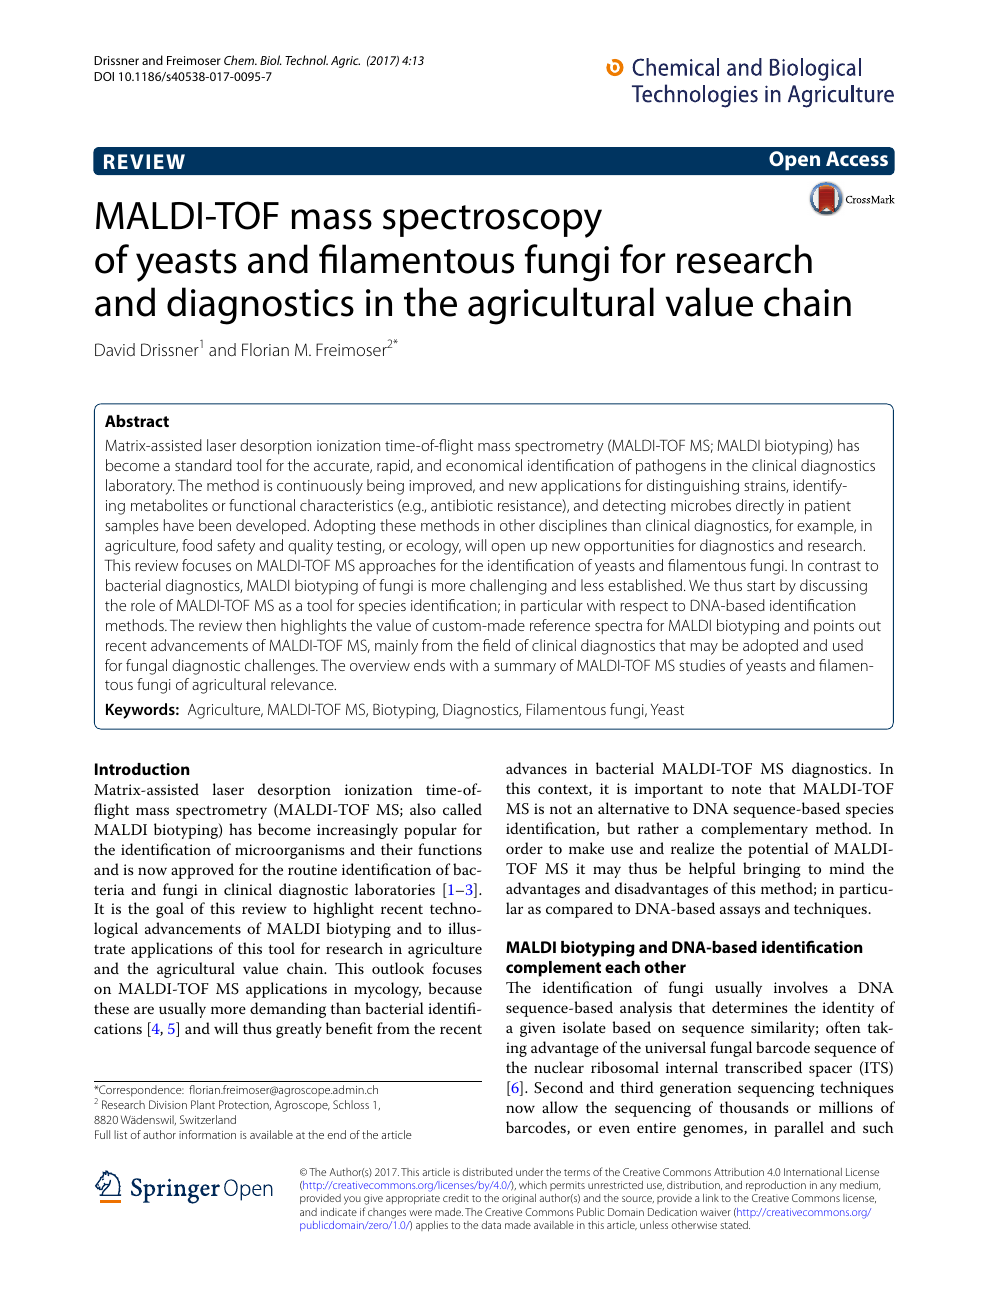 MALDI-TOF mass spectroscopy of yeasts and filamentous fungi for